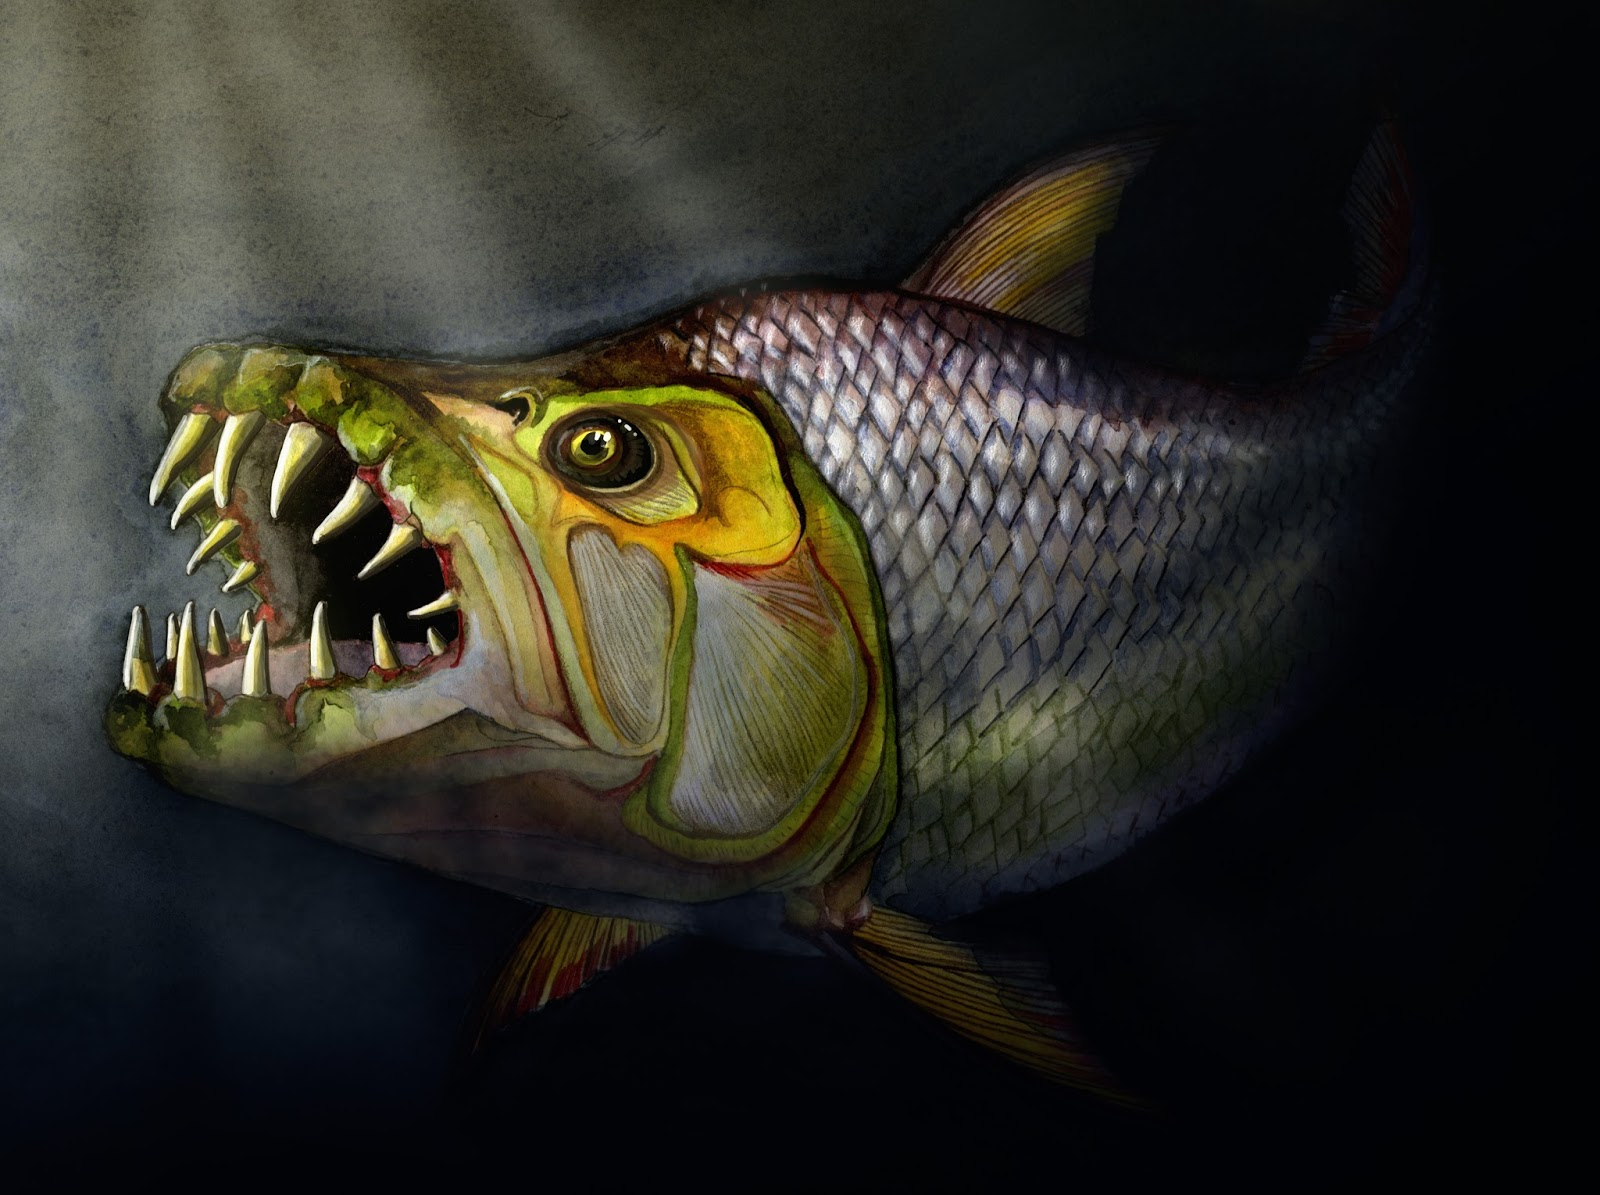 Dope nopes for Tiger fish pictures